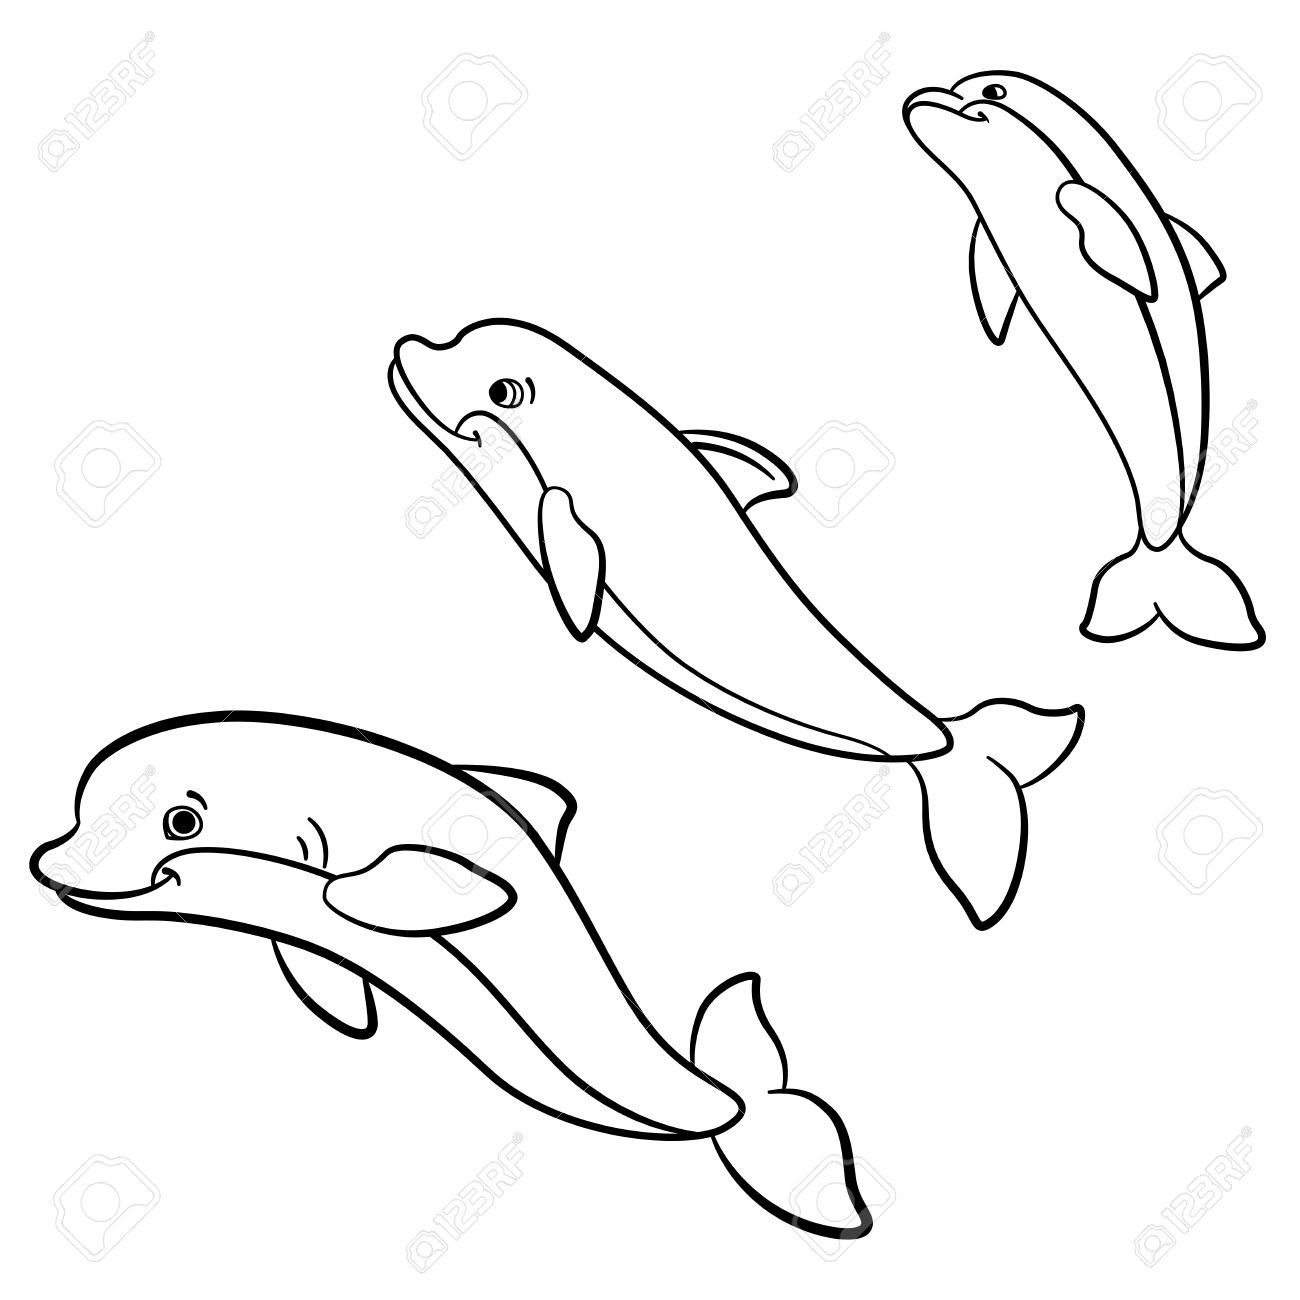 1300x1300 Coloring Pages. Marine Wild Animals. Three Cute Dolphins Jump